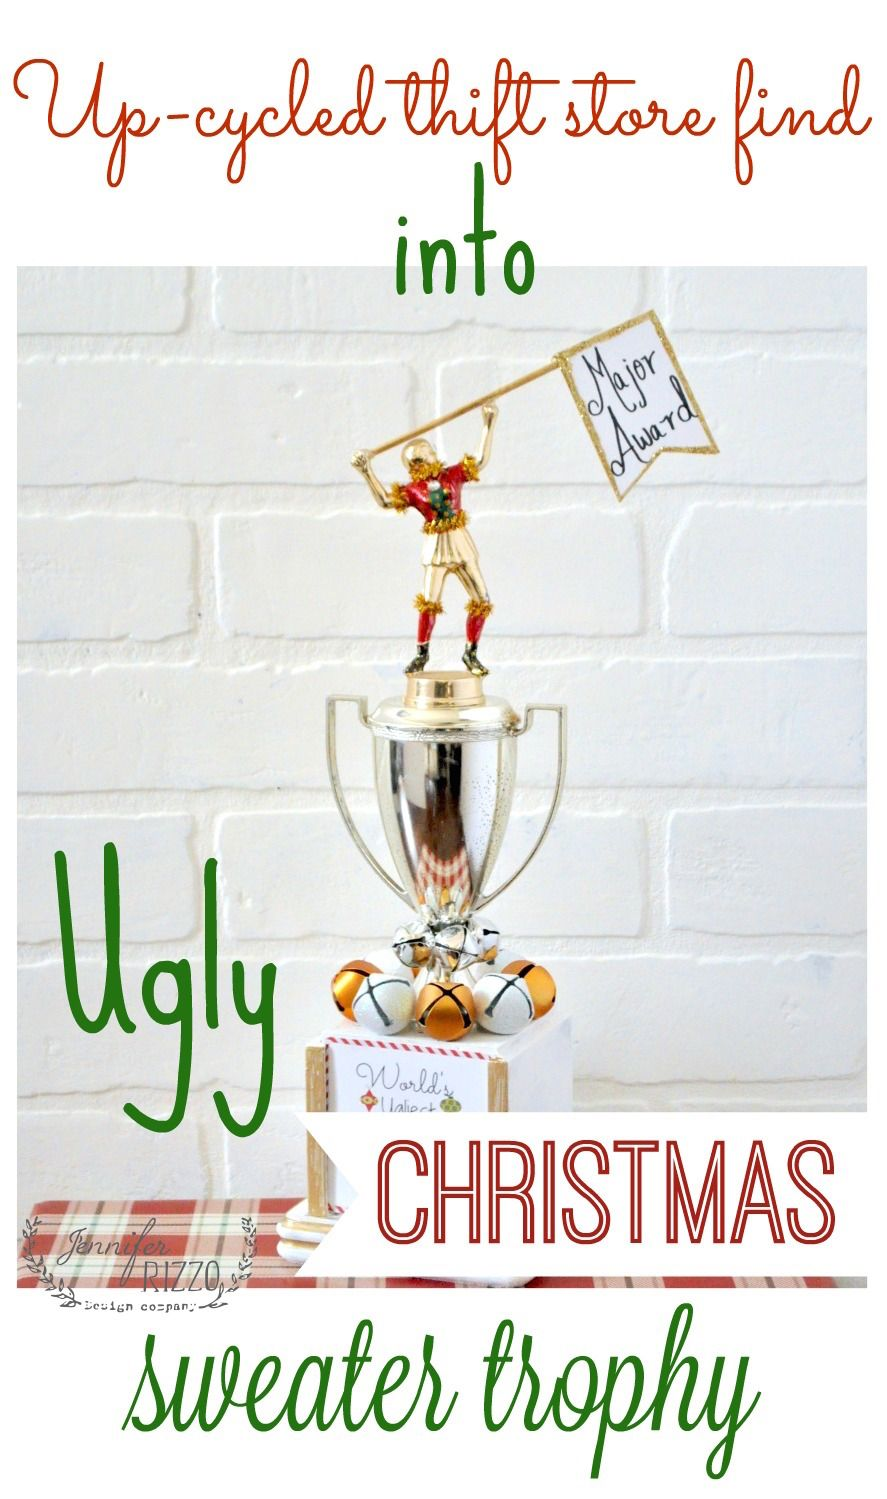 Make an ugly Christmas sweater trophy out of a thrift store trophy